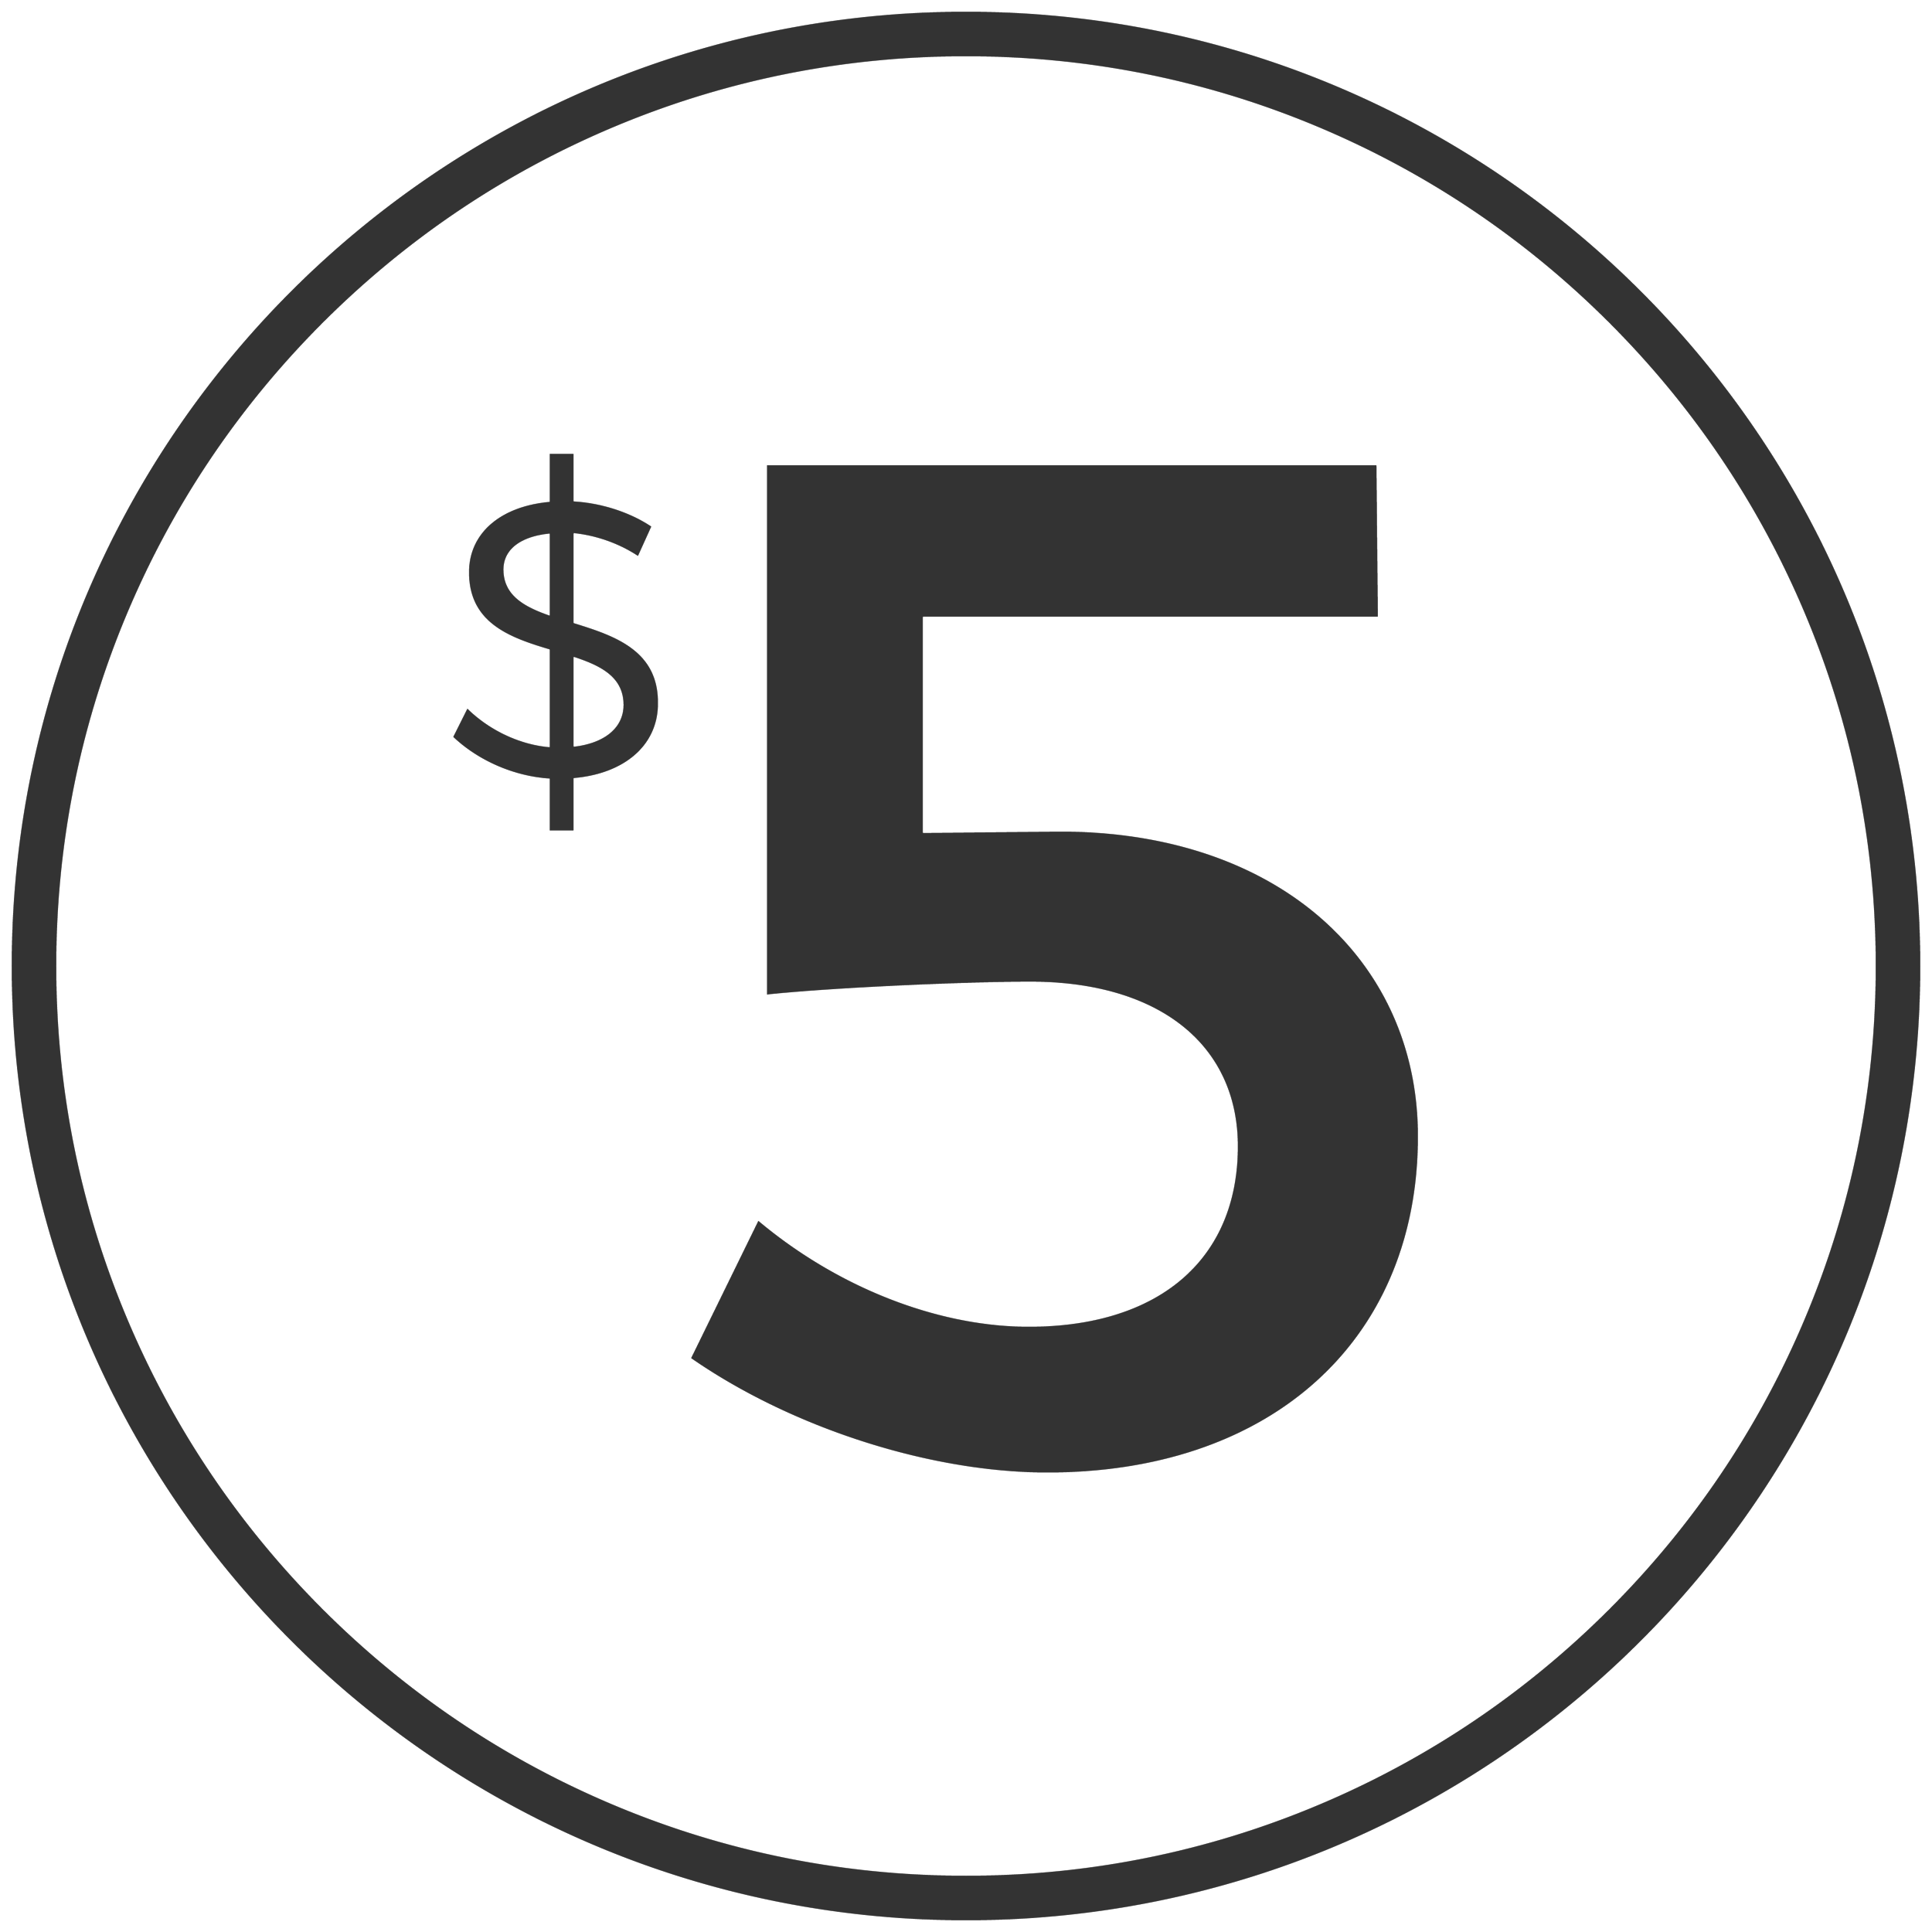 fiveDollarsIcon.png